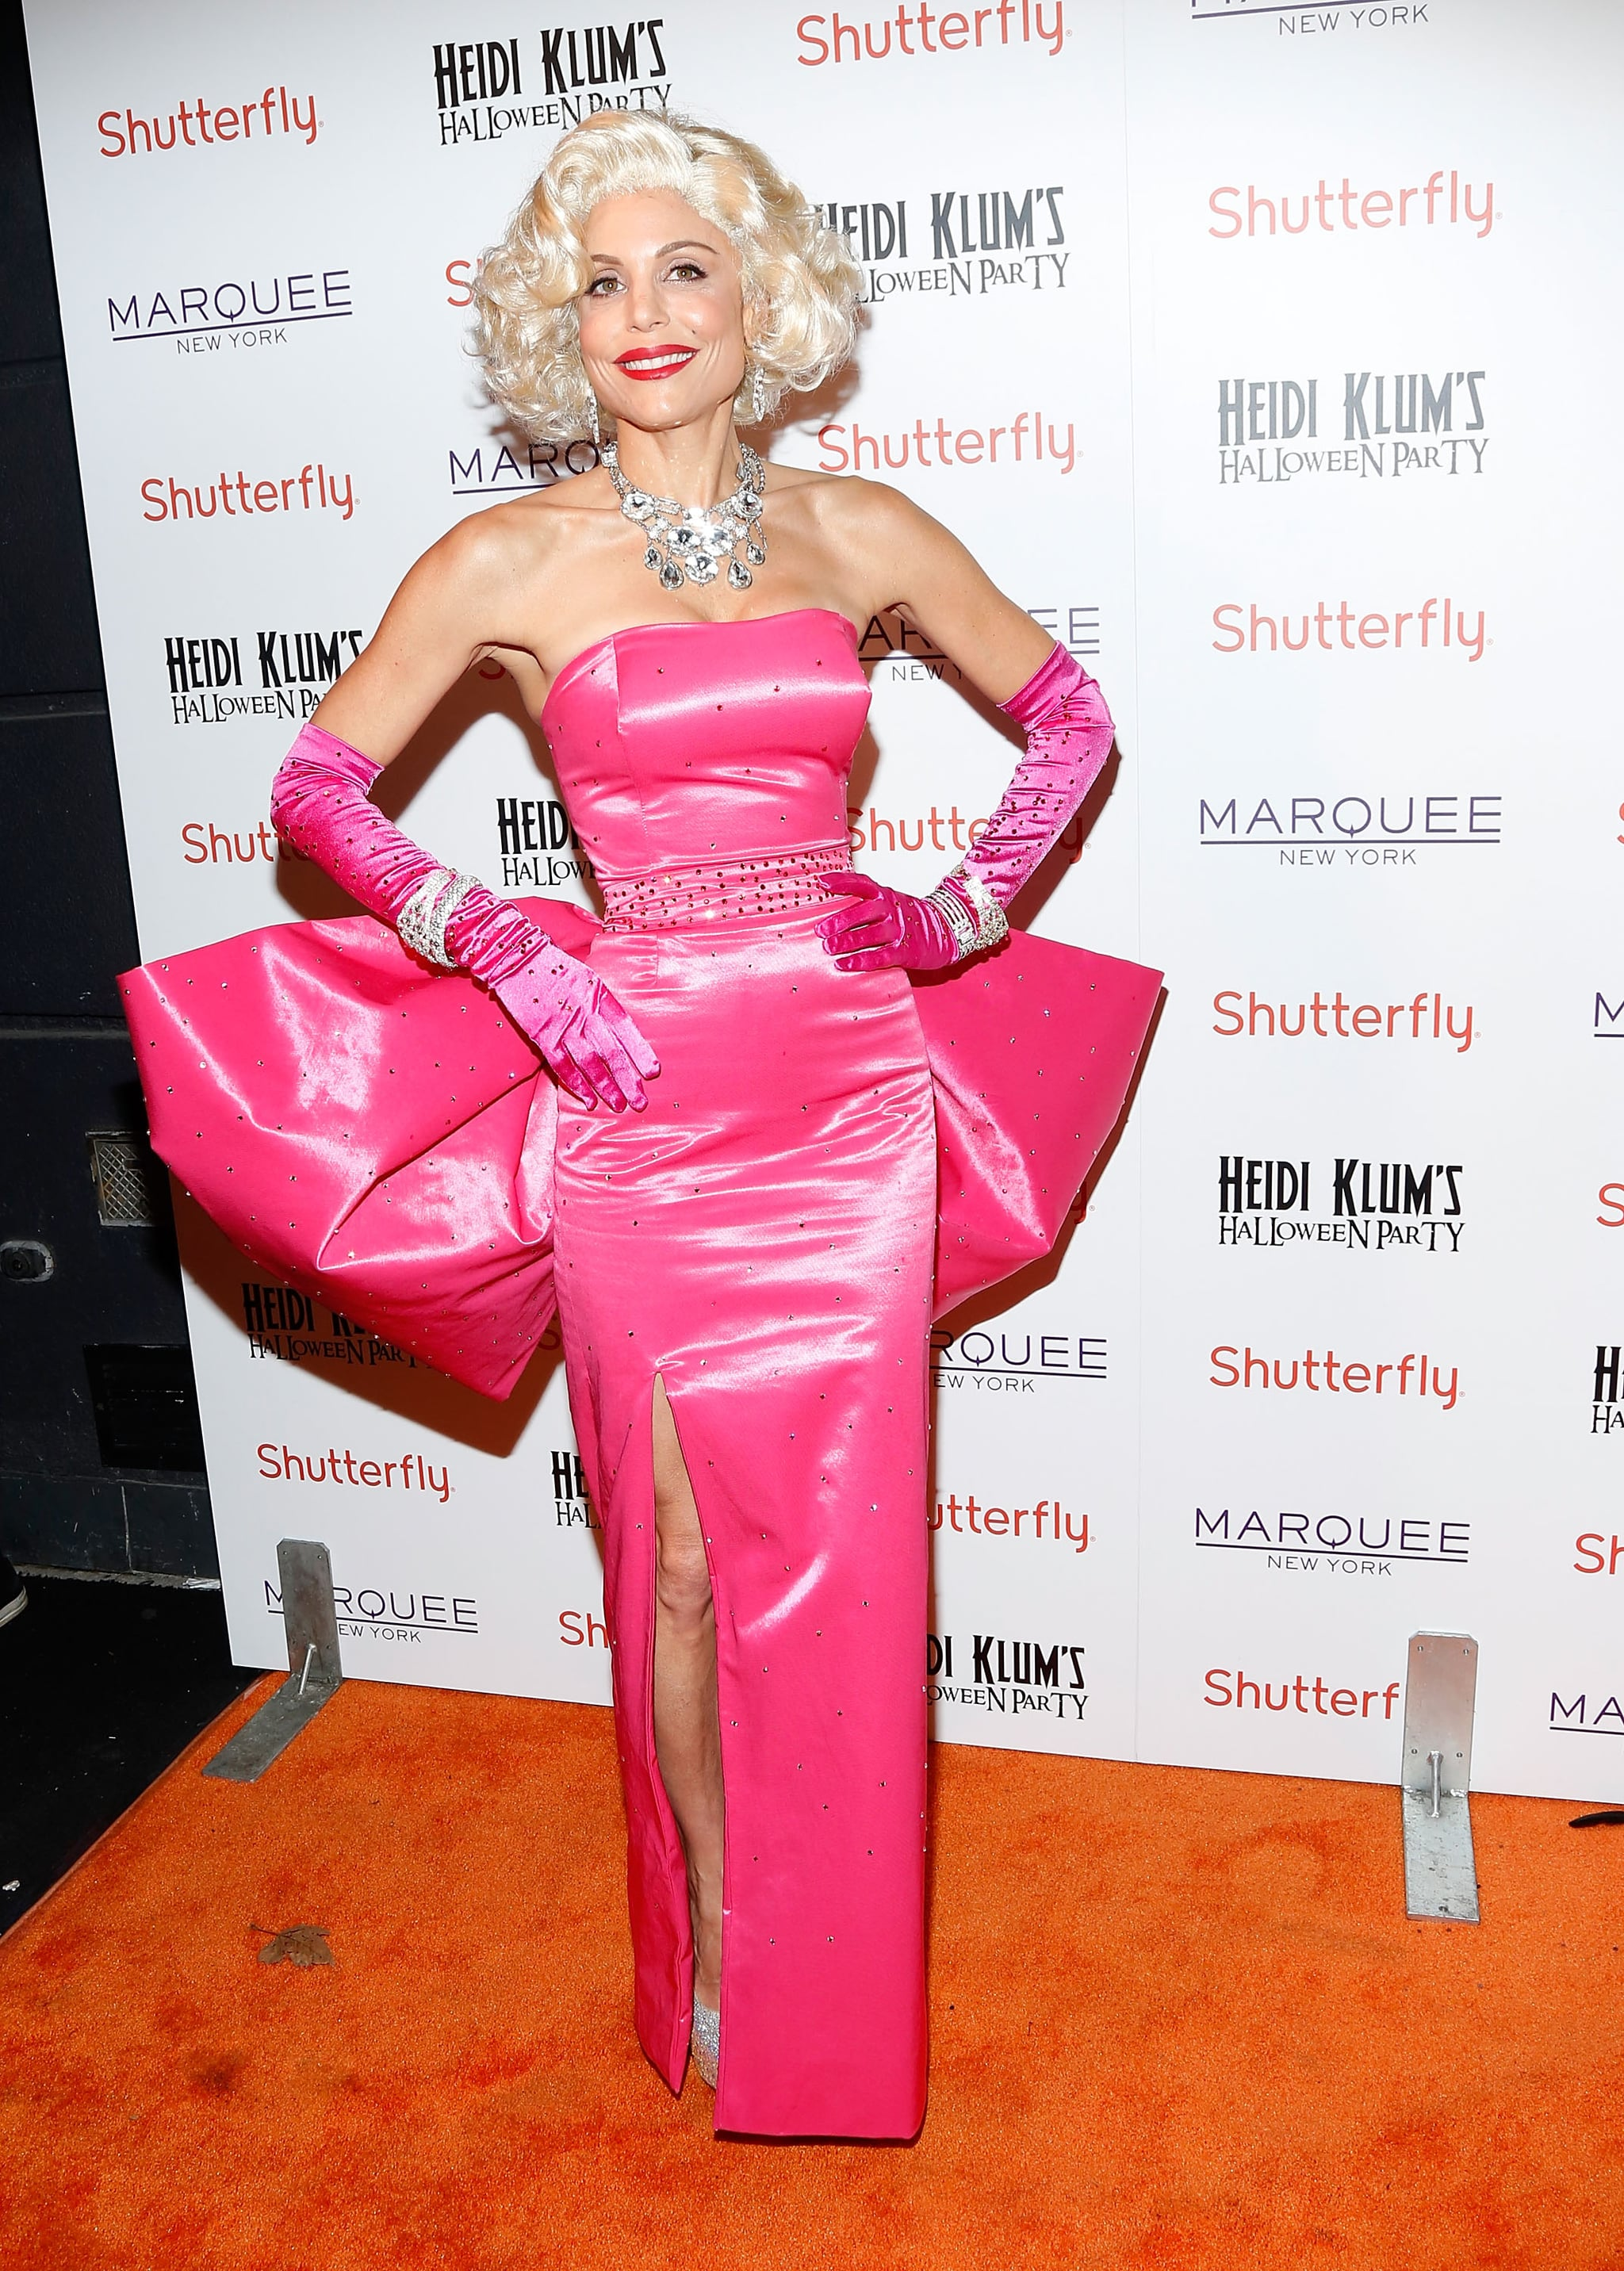 Bethenny Frankel channeled old-Hollywood glamour at Heidi Klum's annual Halloween party in NYC.